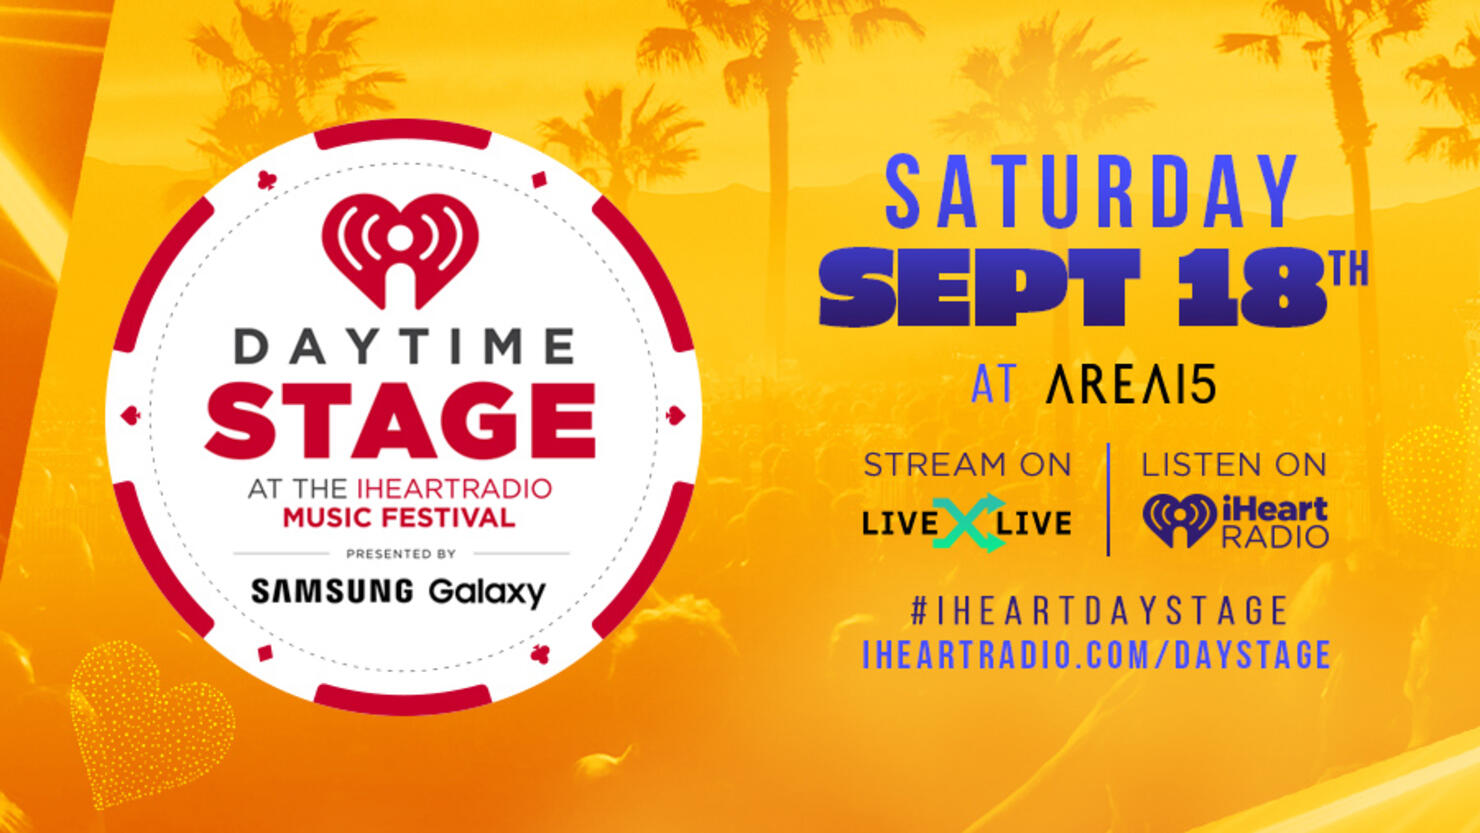 Daytime Stage at the iHeartRadio Music Festival at AREA15